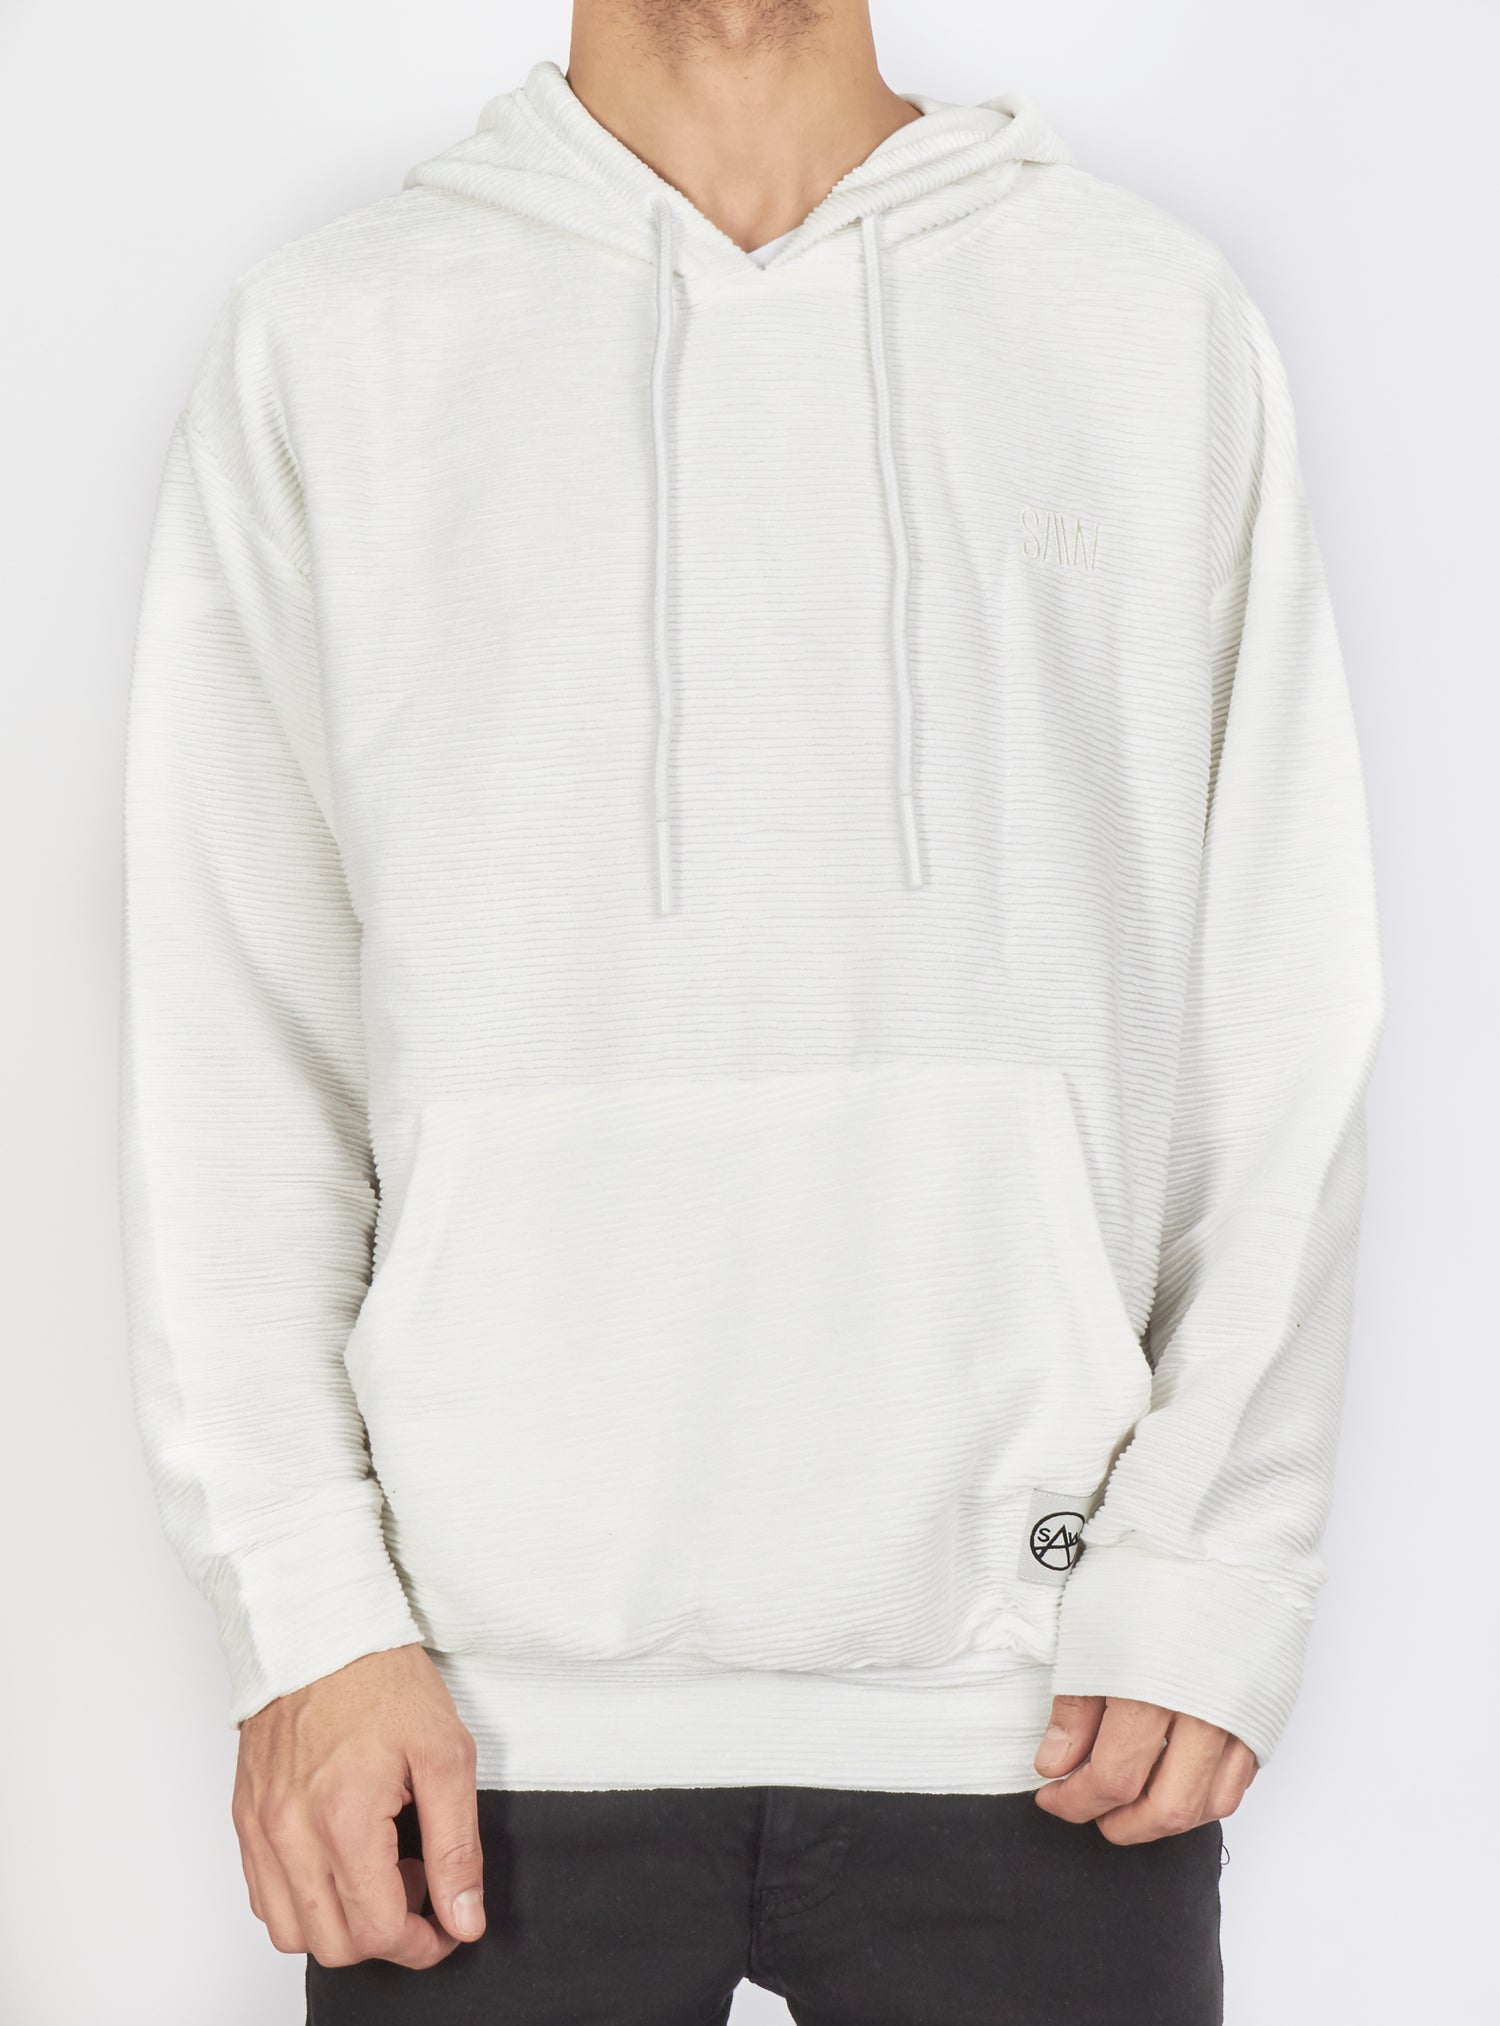 Buyer's Choice Hoodie - Ribbed - White - SW-21577